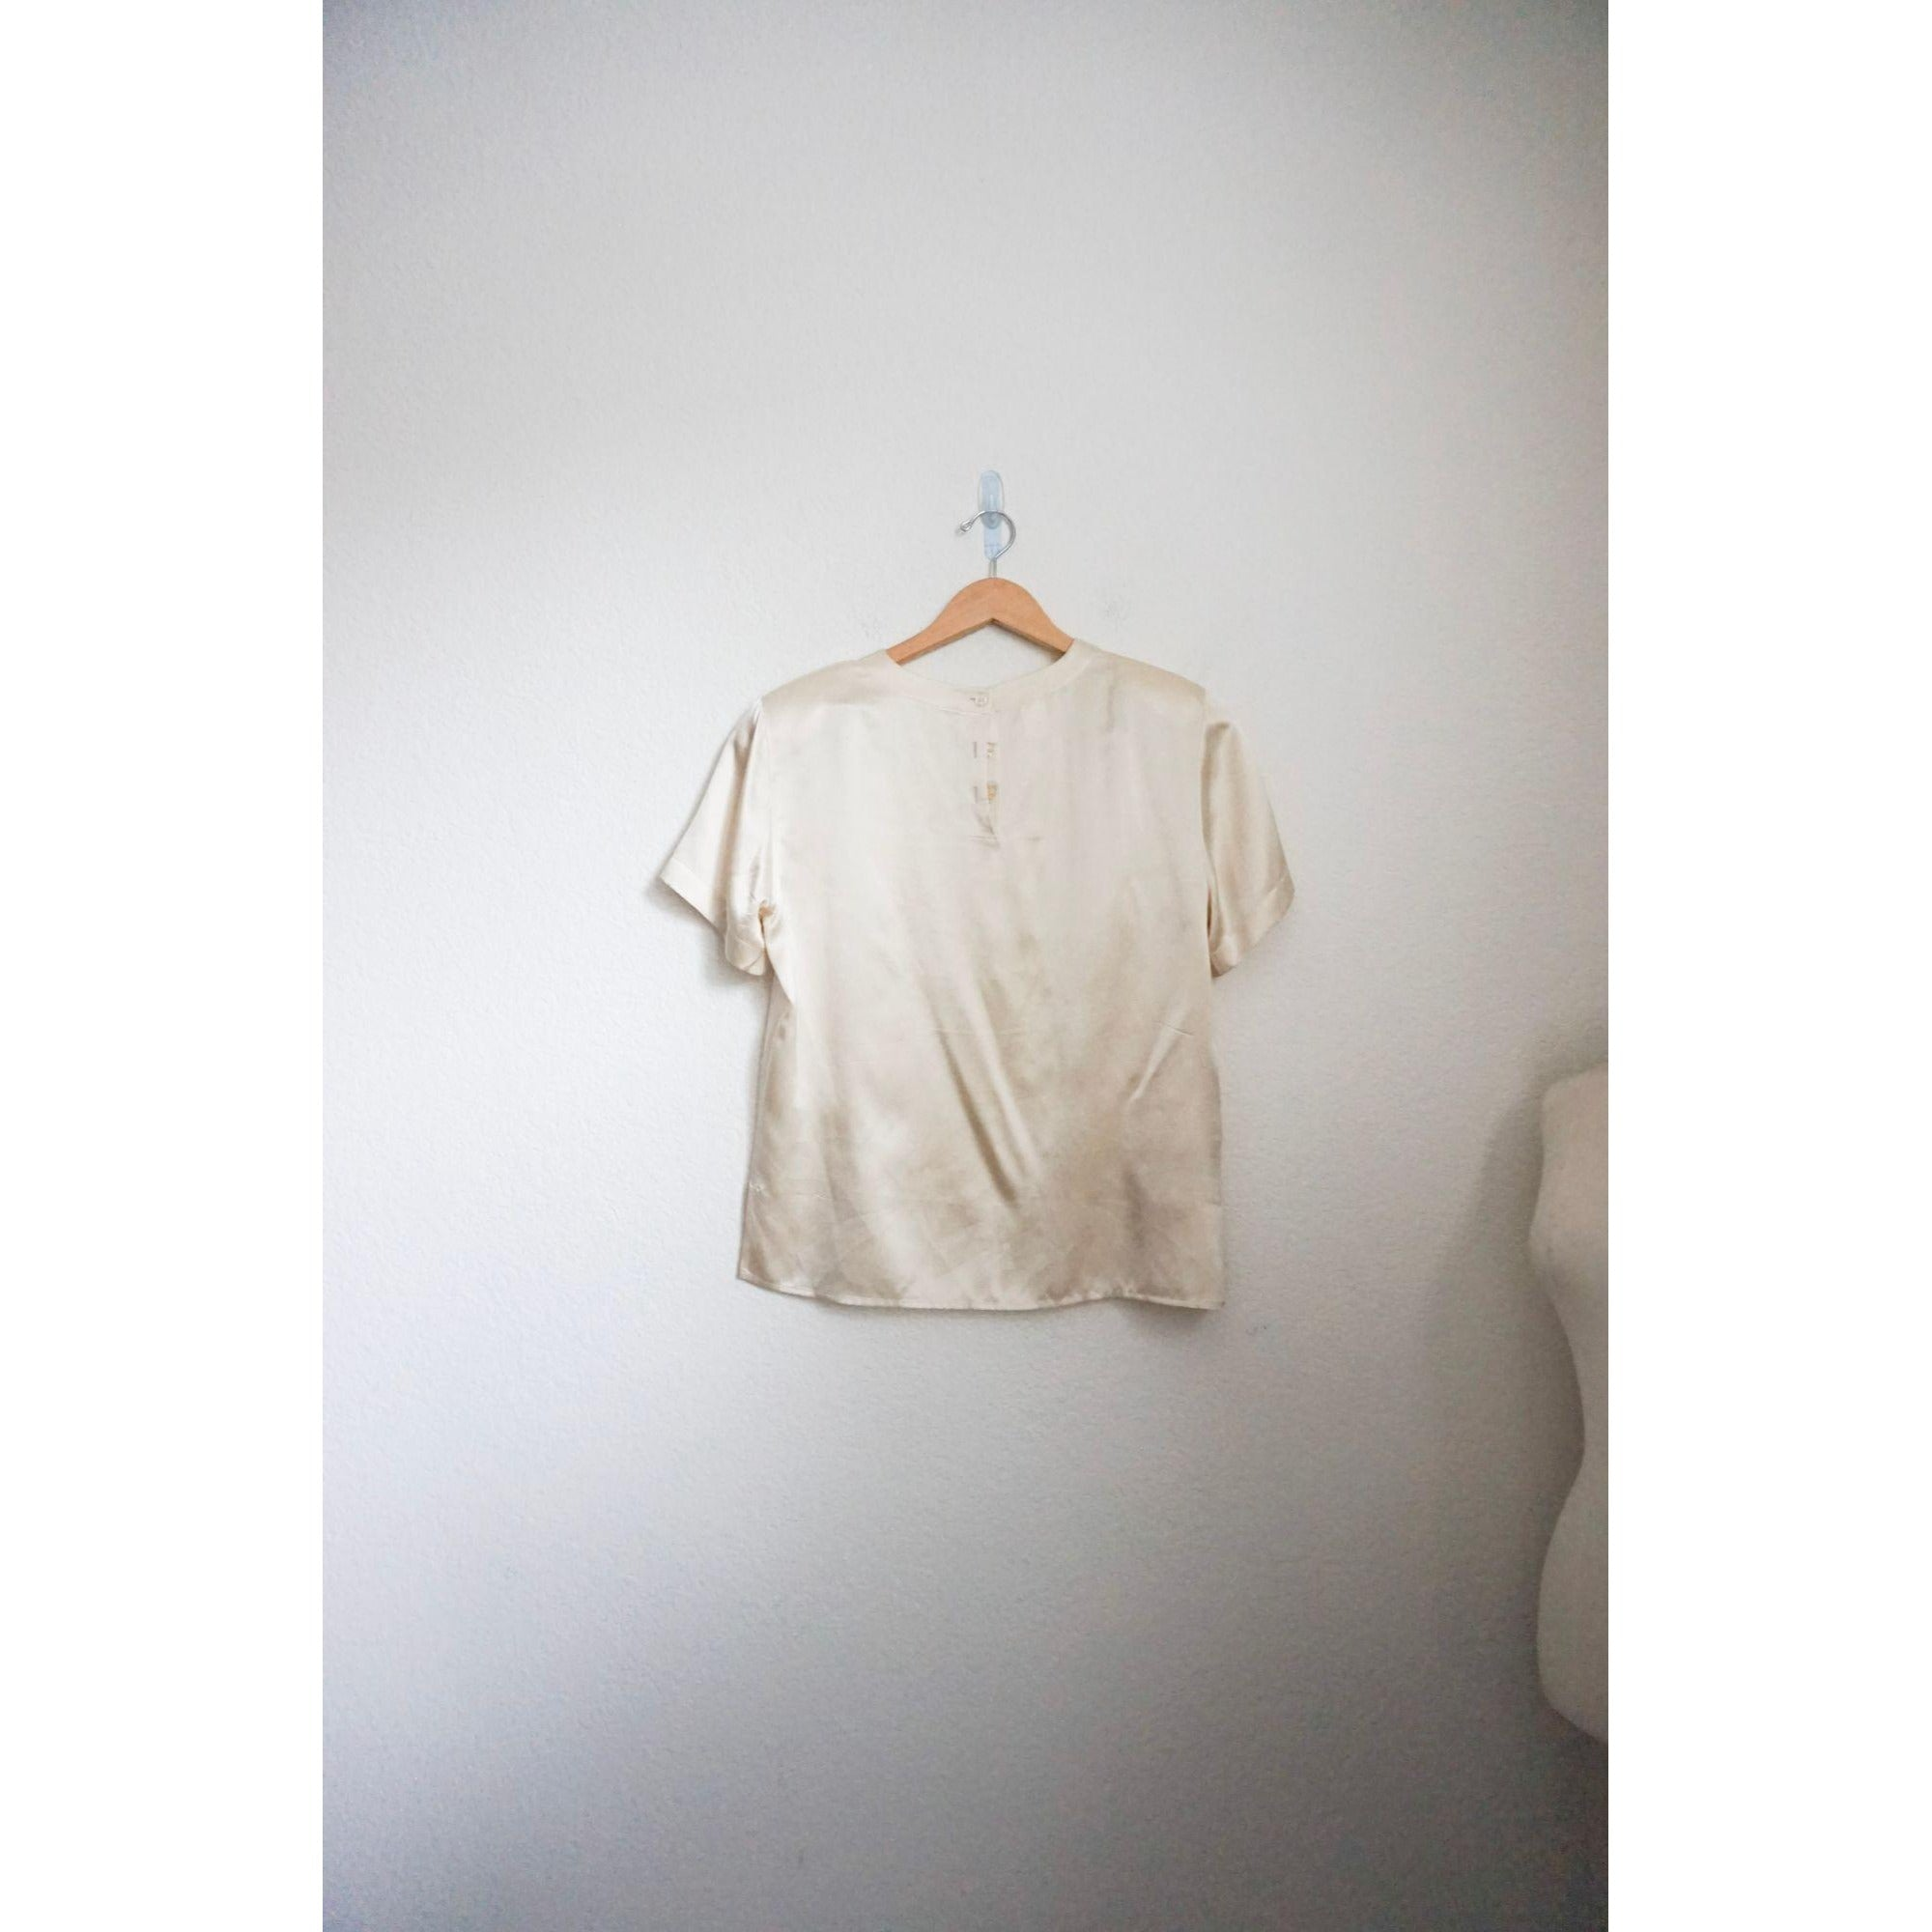 Jones NY ivory short sleeve silk top size 12